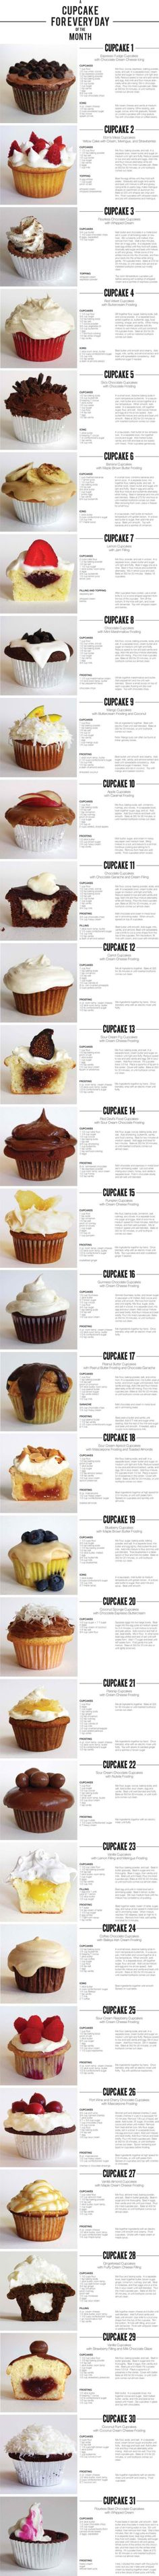 31 different types on cupcakes